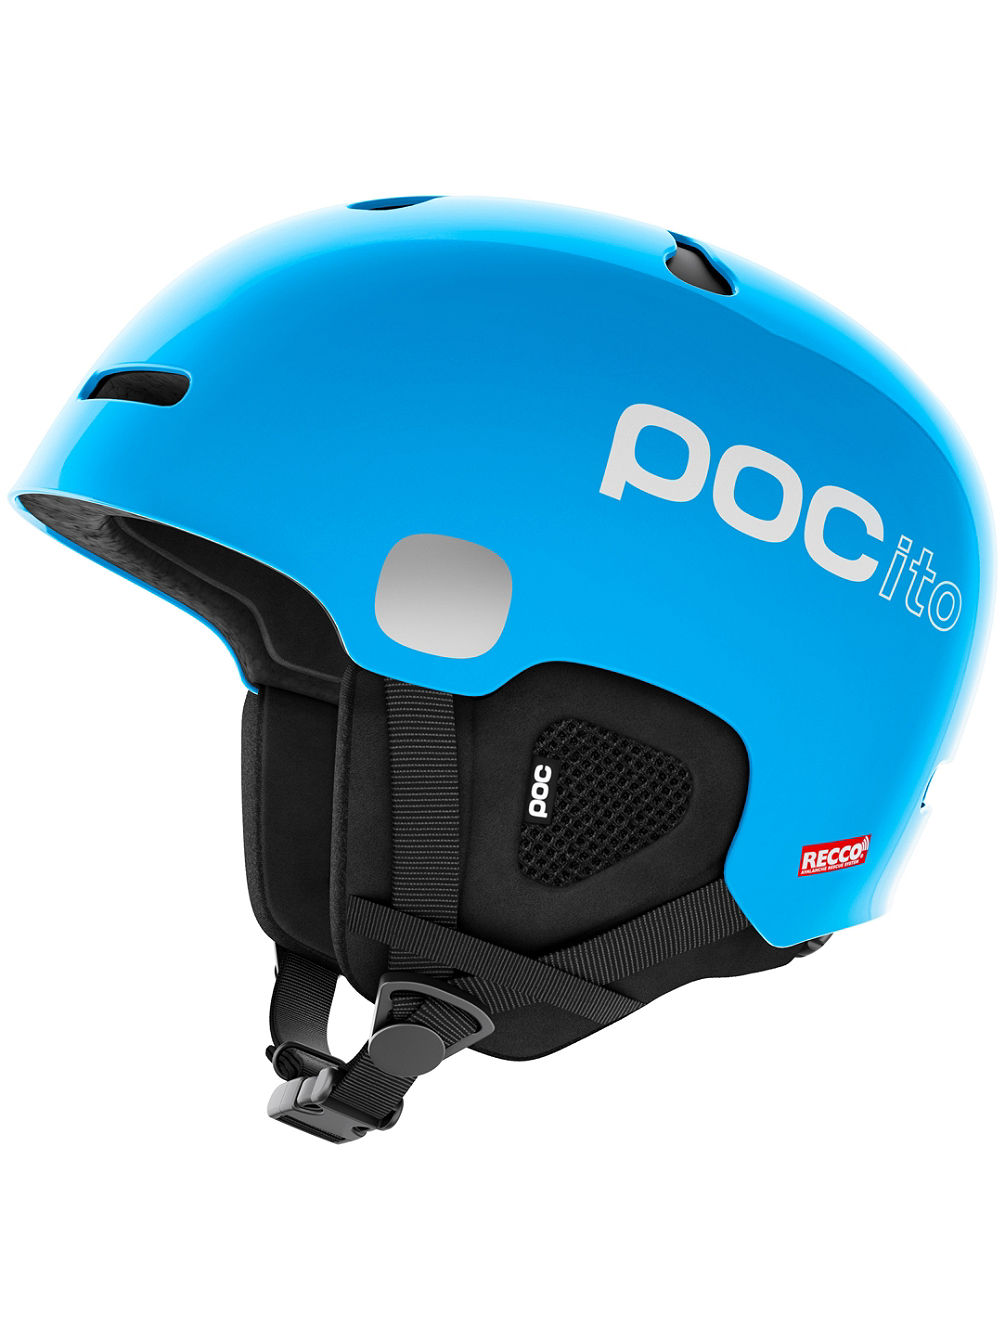 POCito Auric Cut SPIN Capacete